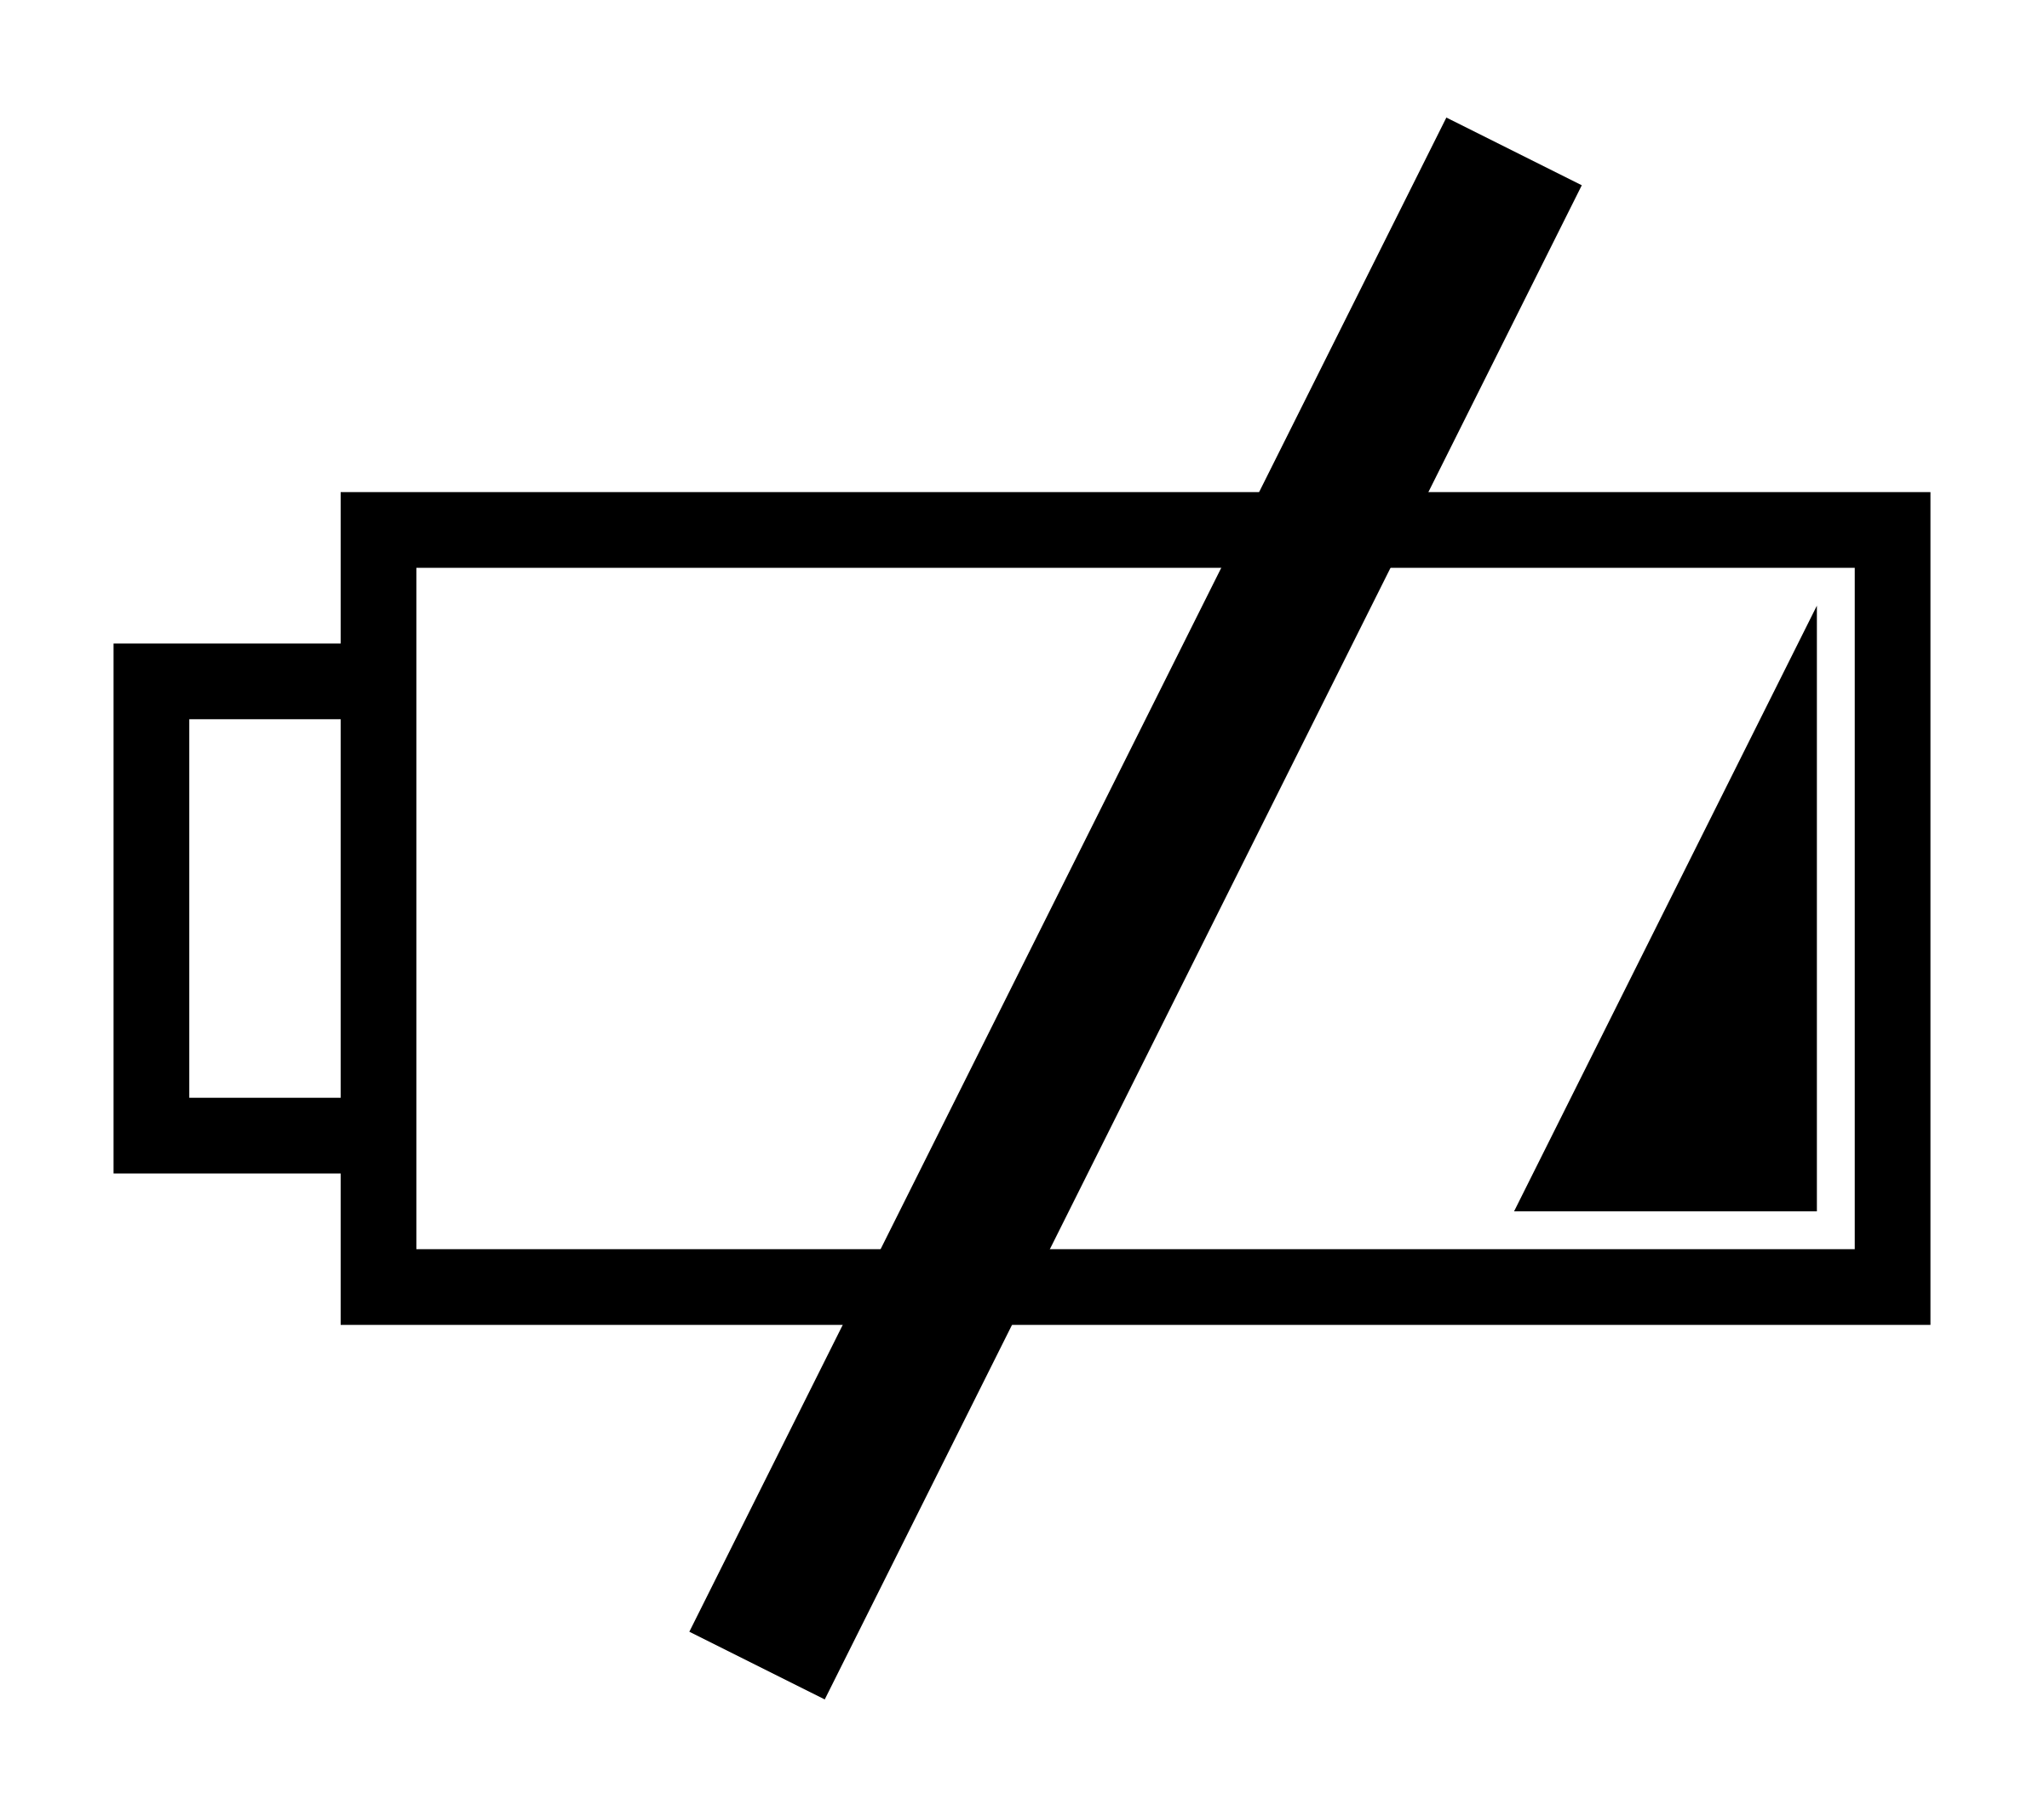 Low battery icon by CrazyTerabyte